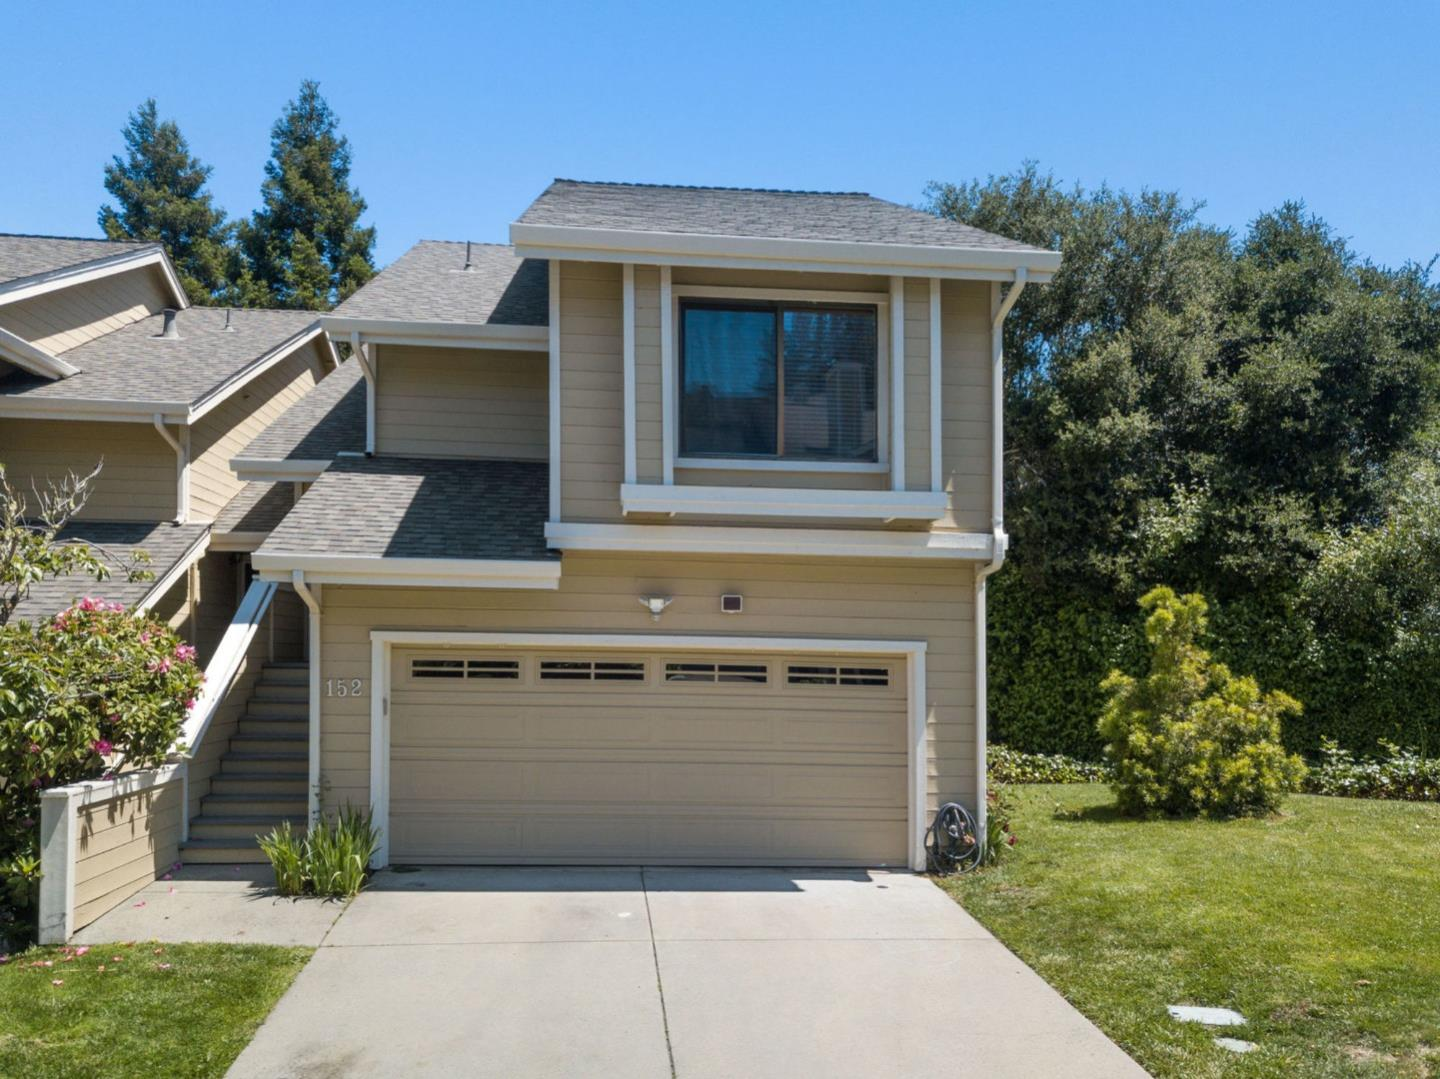 Detail Gallery Image 1 of 1 For 152 Arabian Way, Scotts Valley, CA, 95066 - 3 Beds | 2 Baths